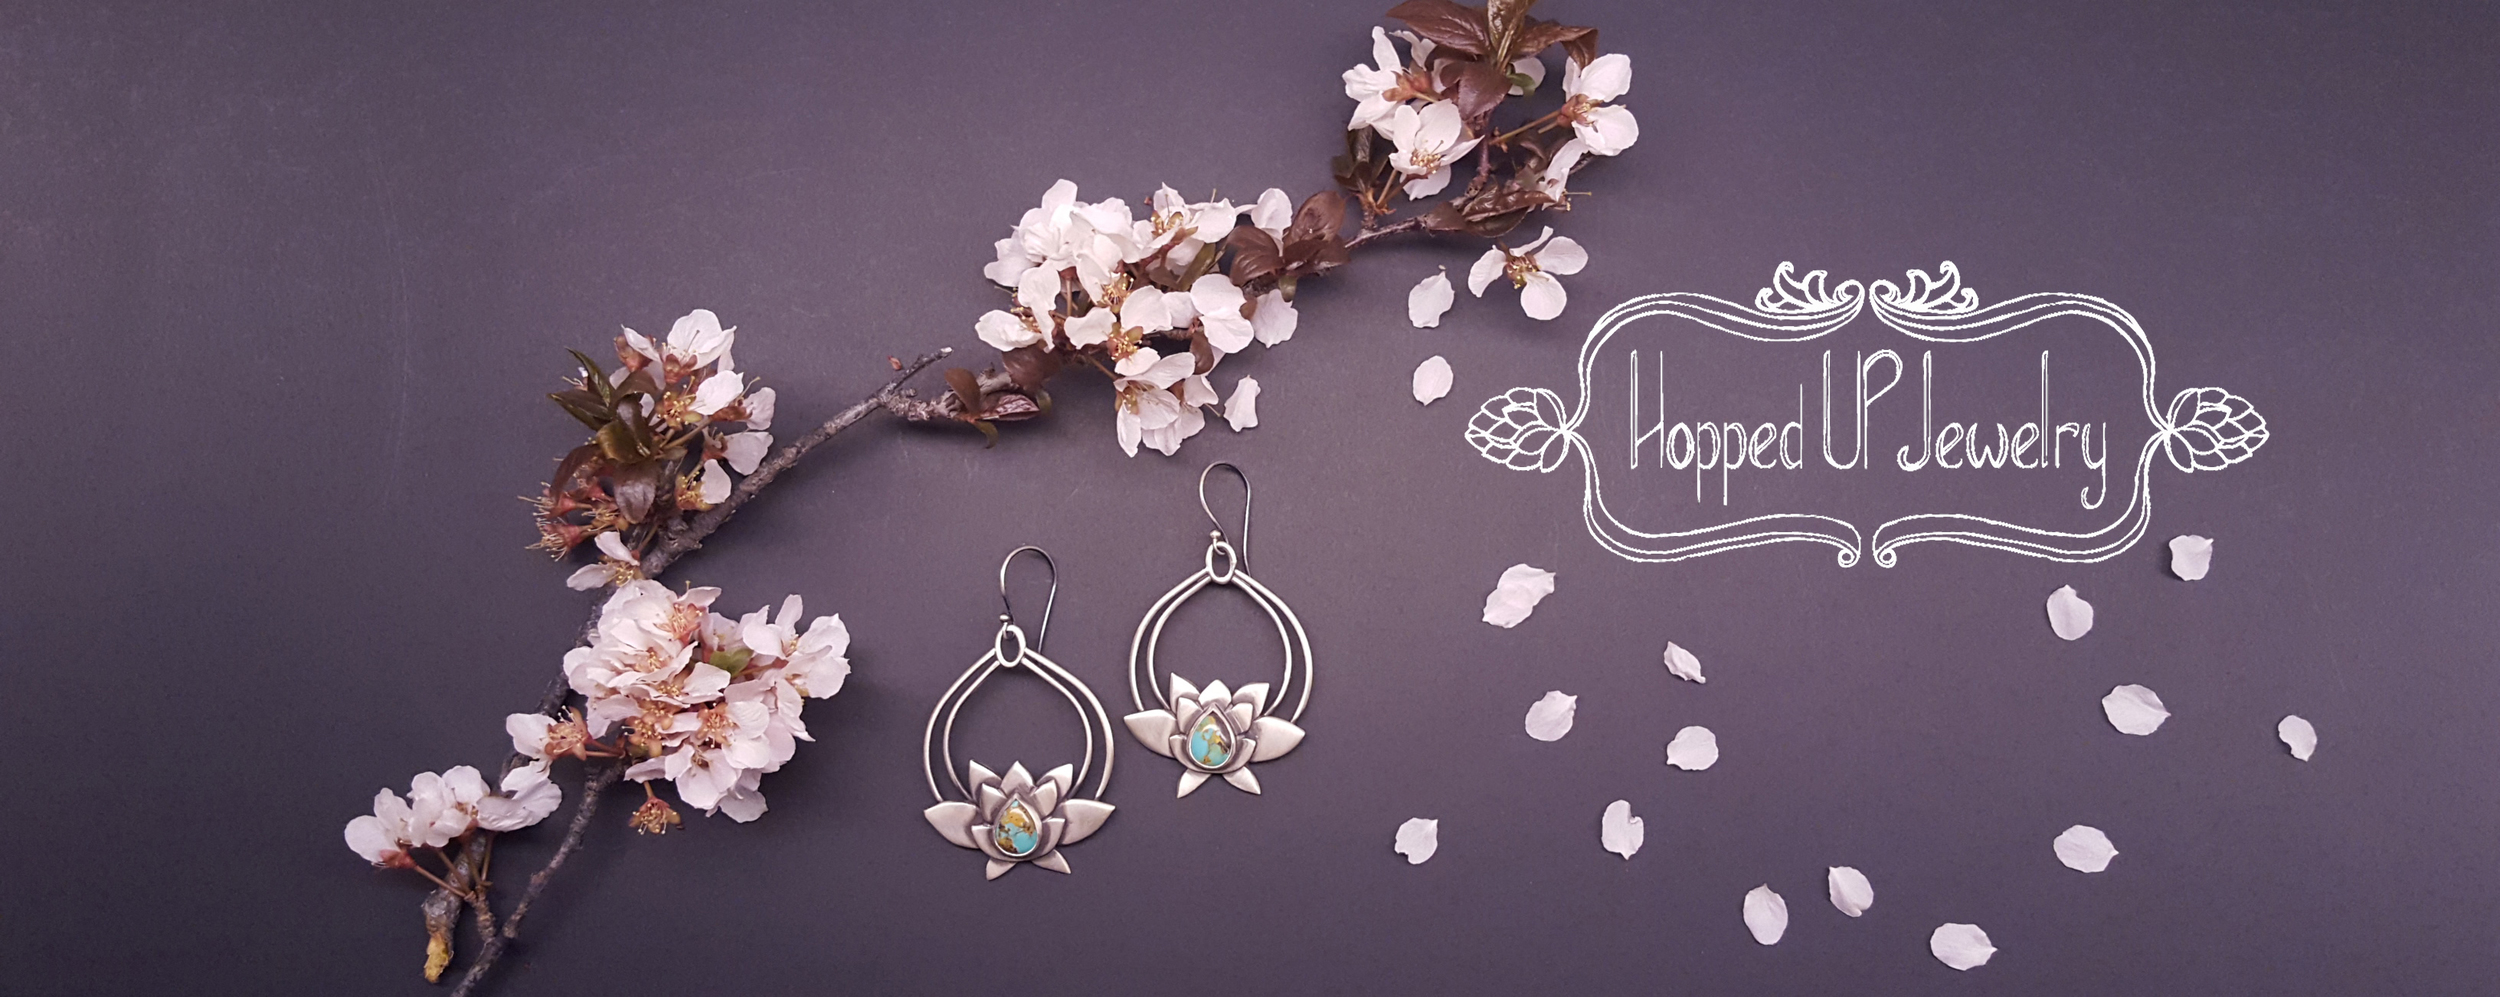 Hopped Up Jewelry Homepage Banner 2016 a.jpg